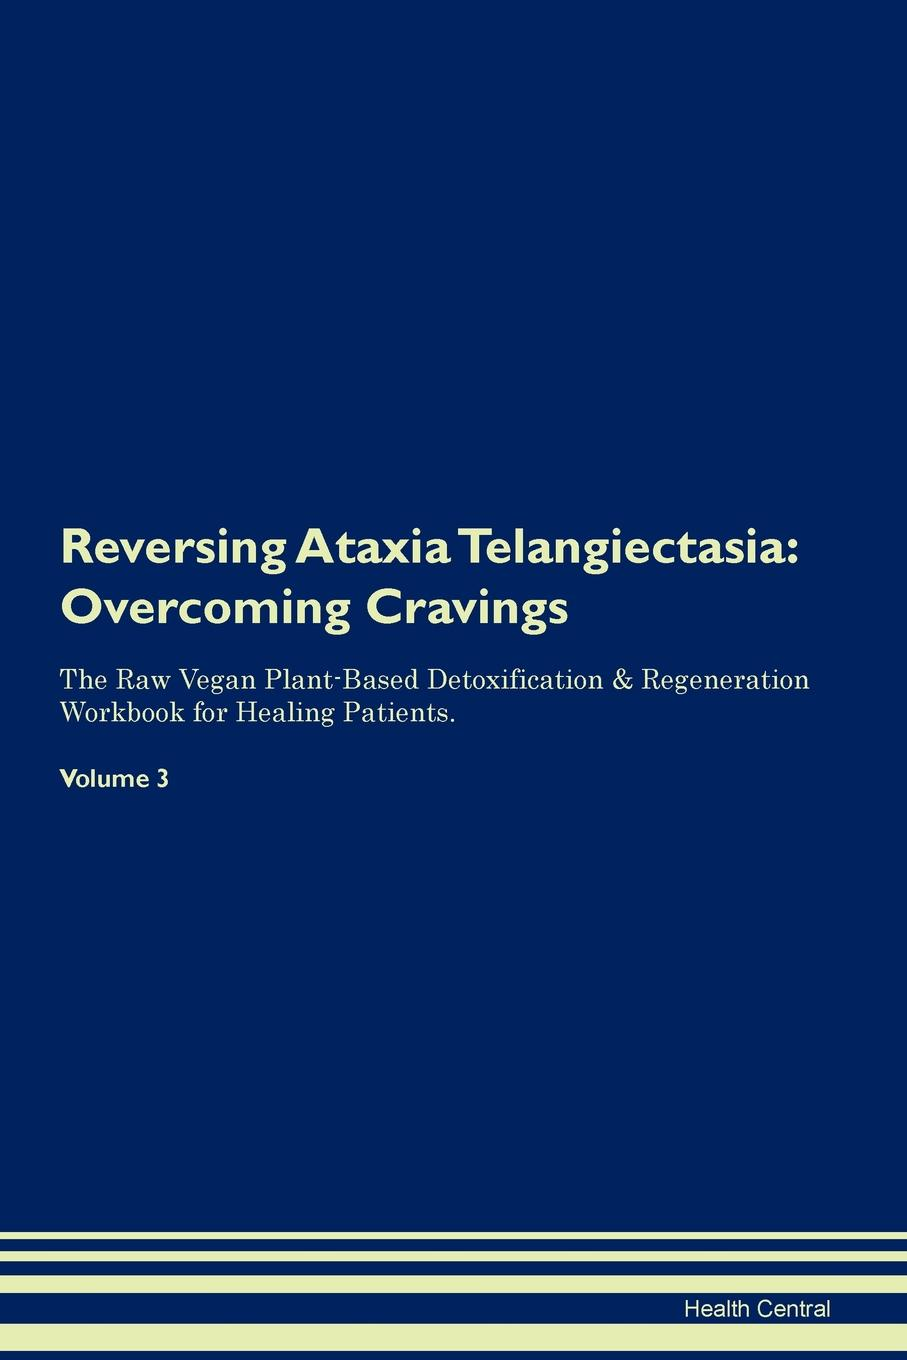 Фото - Health Central Reversing Ataxia Telangiectasia. Overcoming Cravings The Raw Vegan Plant-Based Detoxification & Regeneration Workbook for Healing Patients. Volume 3 health central reversing spinocerebellar ataxia overcoming cravings the raw vegan plant based detoxification